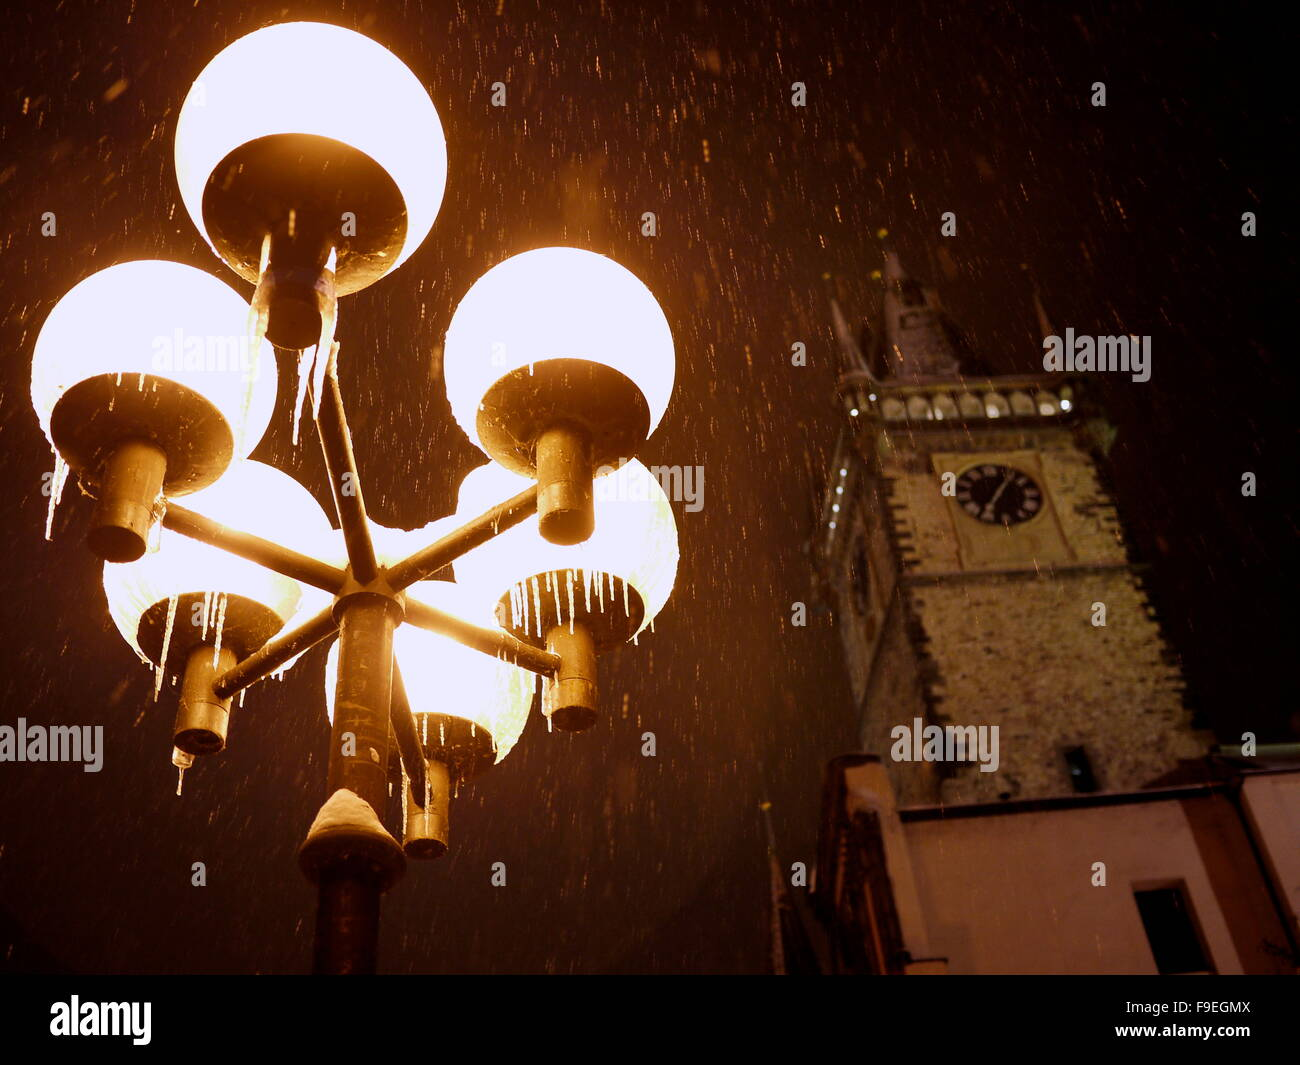 Detail of Streetlight and Tower in Background - Stock Image